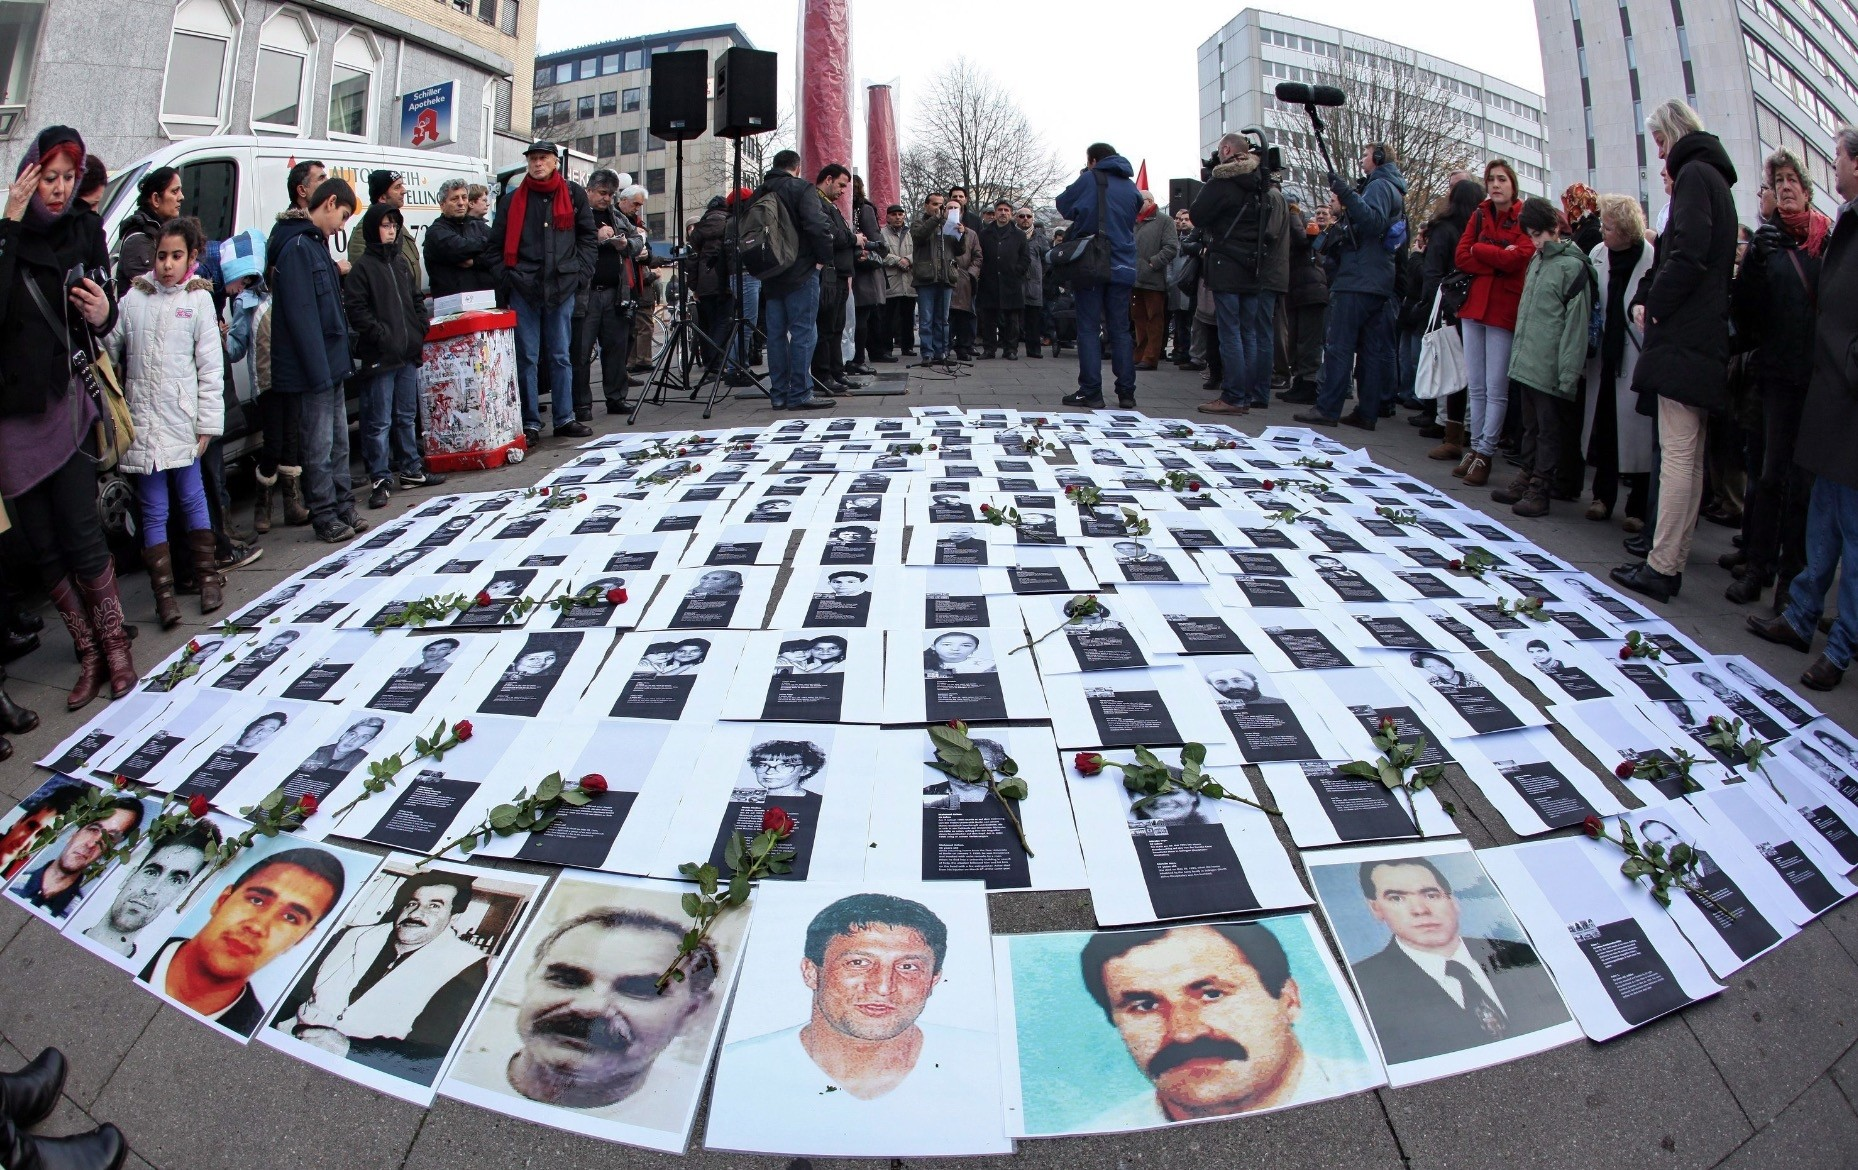 Photos of neo-Nazi violence victims lie in Germany on a street, with NSU victims on the front row, during a protest in Hamburg in 2011.